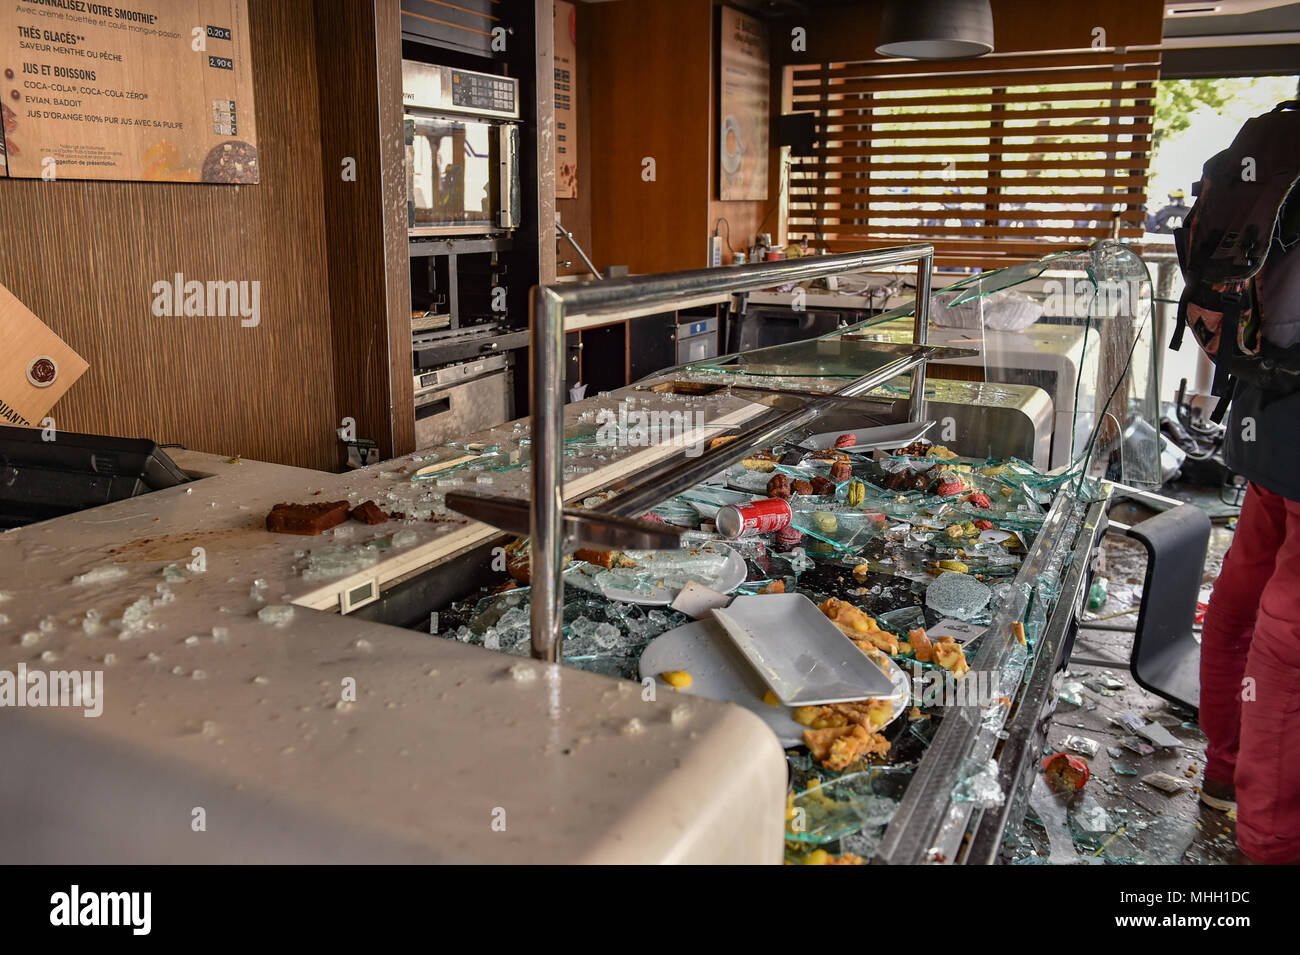 Paris, France. 1st May 2018. Paris police clash with protesters as demonstrations turn violent. PICTURED: 'Black Bloc' protesters smashed their way into a McDonald's restaurant and caused significant damage. Credit: Peter Manning/Alamy Live News - Stock Image